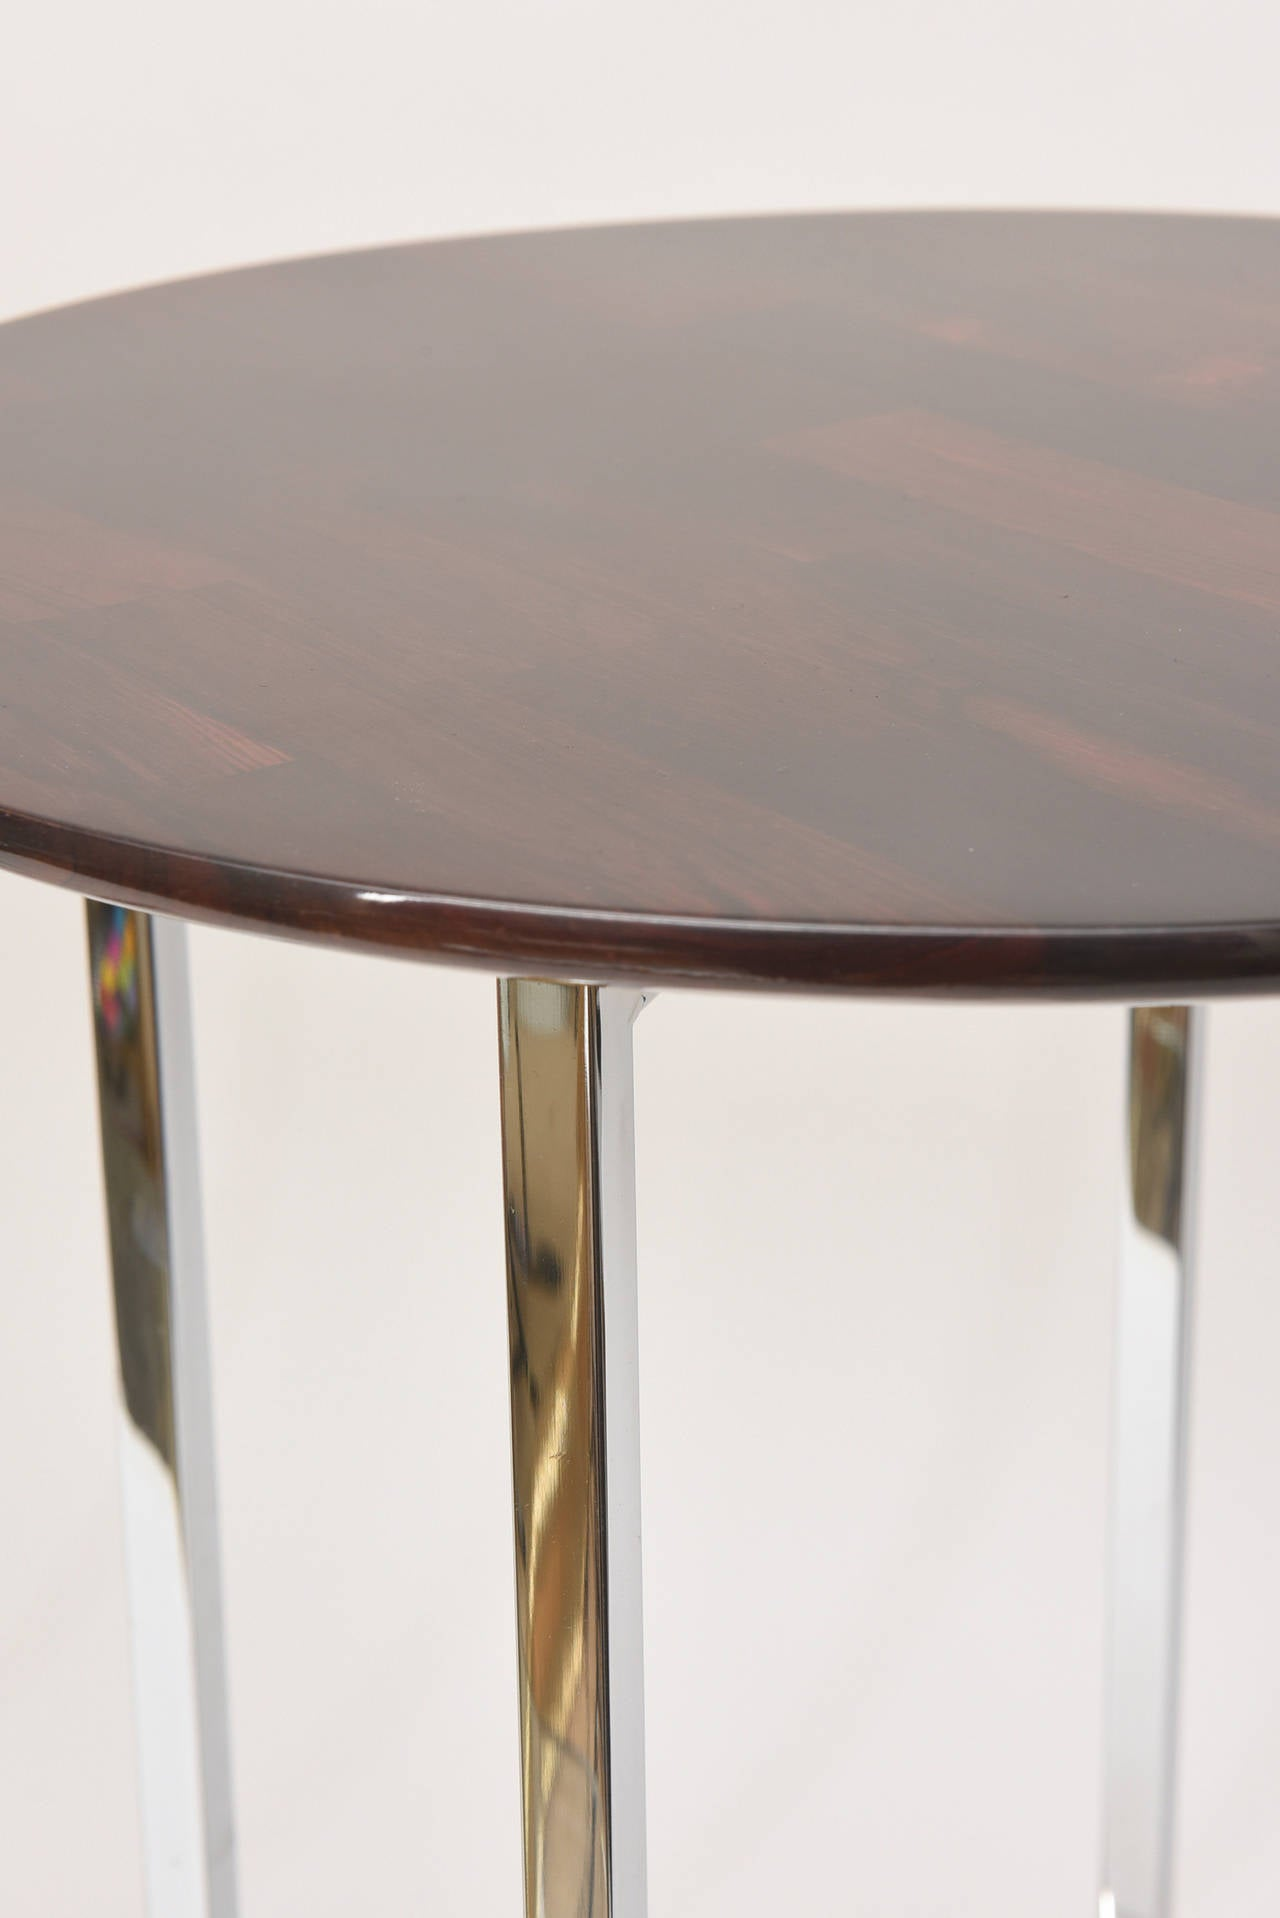 Pair of Milo Baughman Polished Chrome and Wood Side Tables/ HOLIDAY SALE For Sale 2